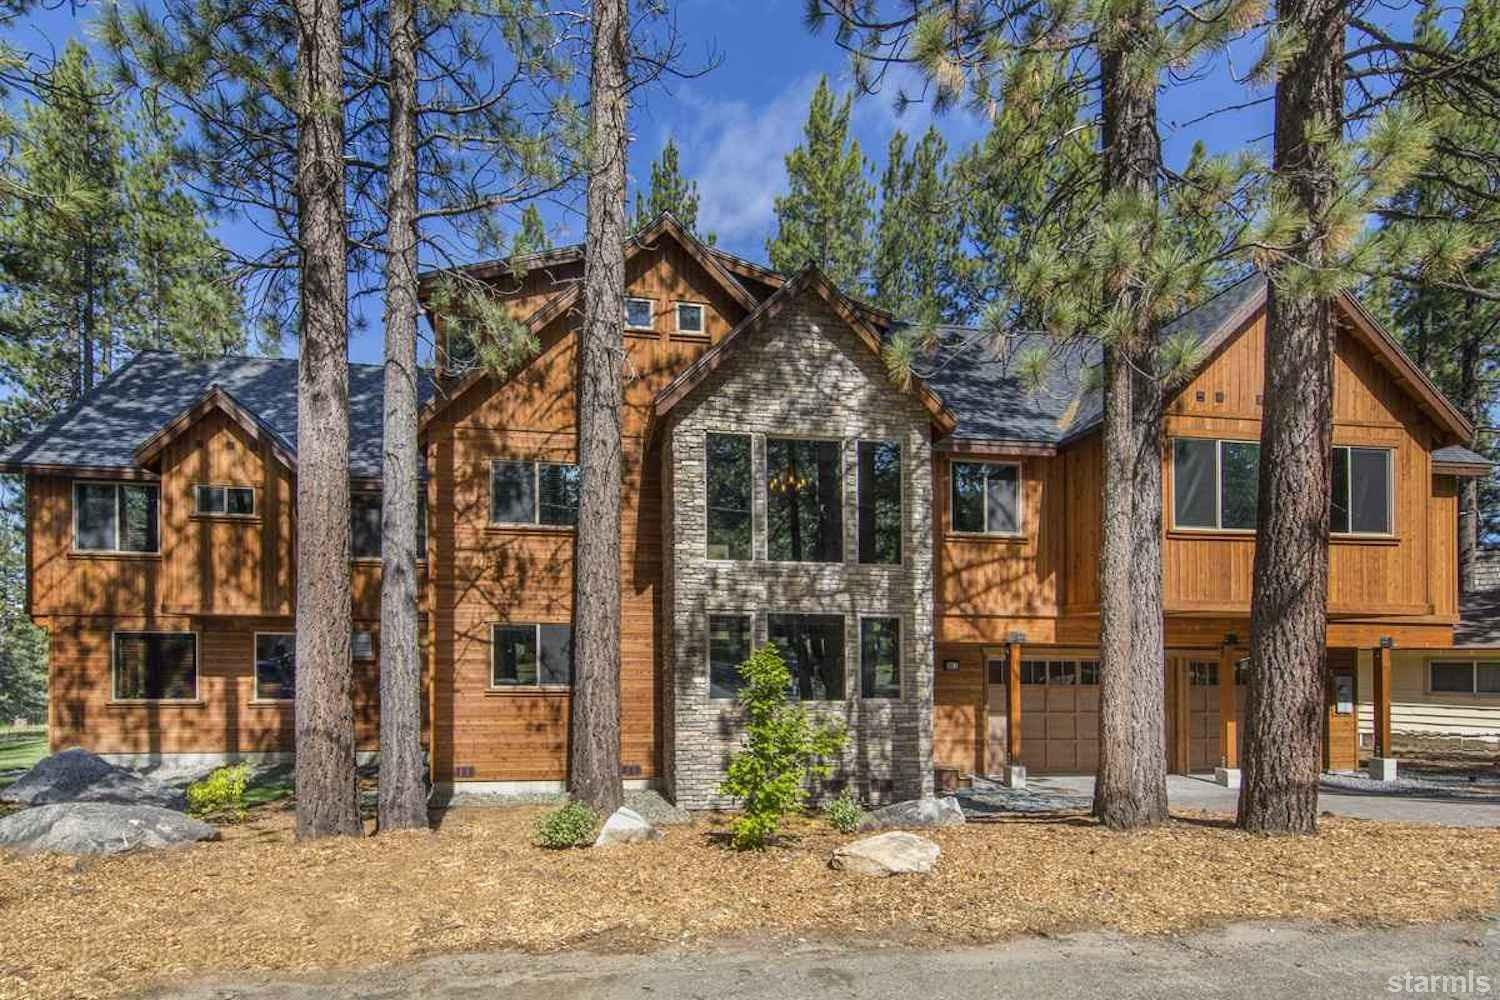 Image for 2611 Copper Way, South Lake Tahoe, CA 96150